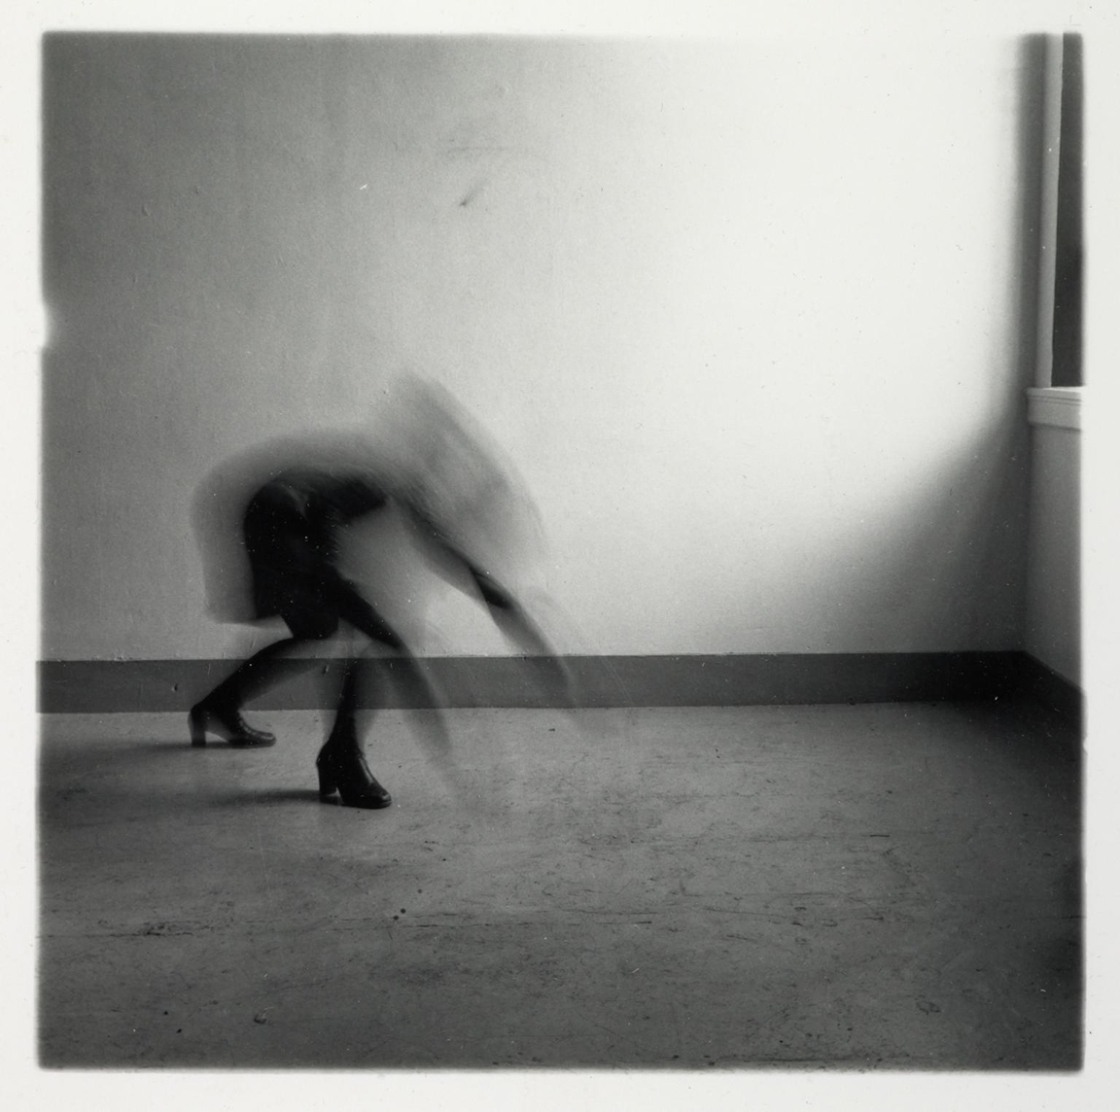 Space?, Providence, Rhode Island, 1975-1978 1975-8 by Francesca Woodman 1958-1981